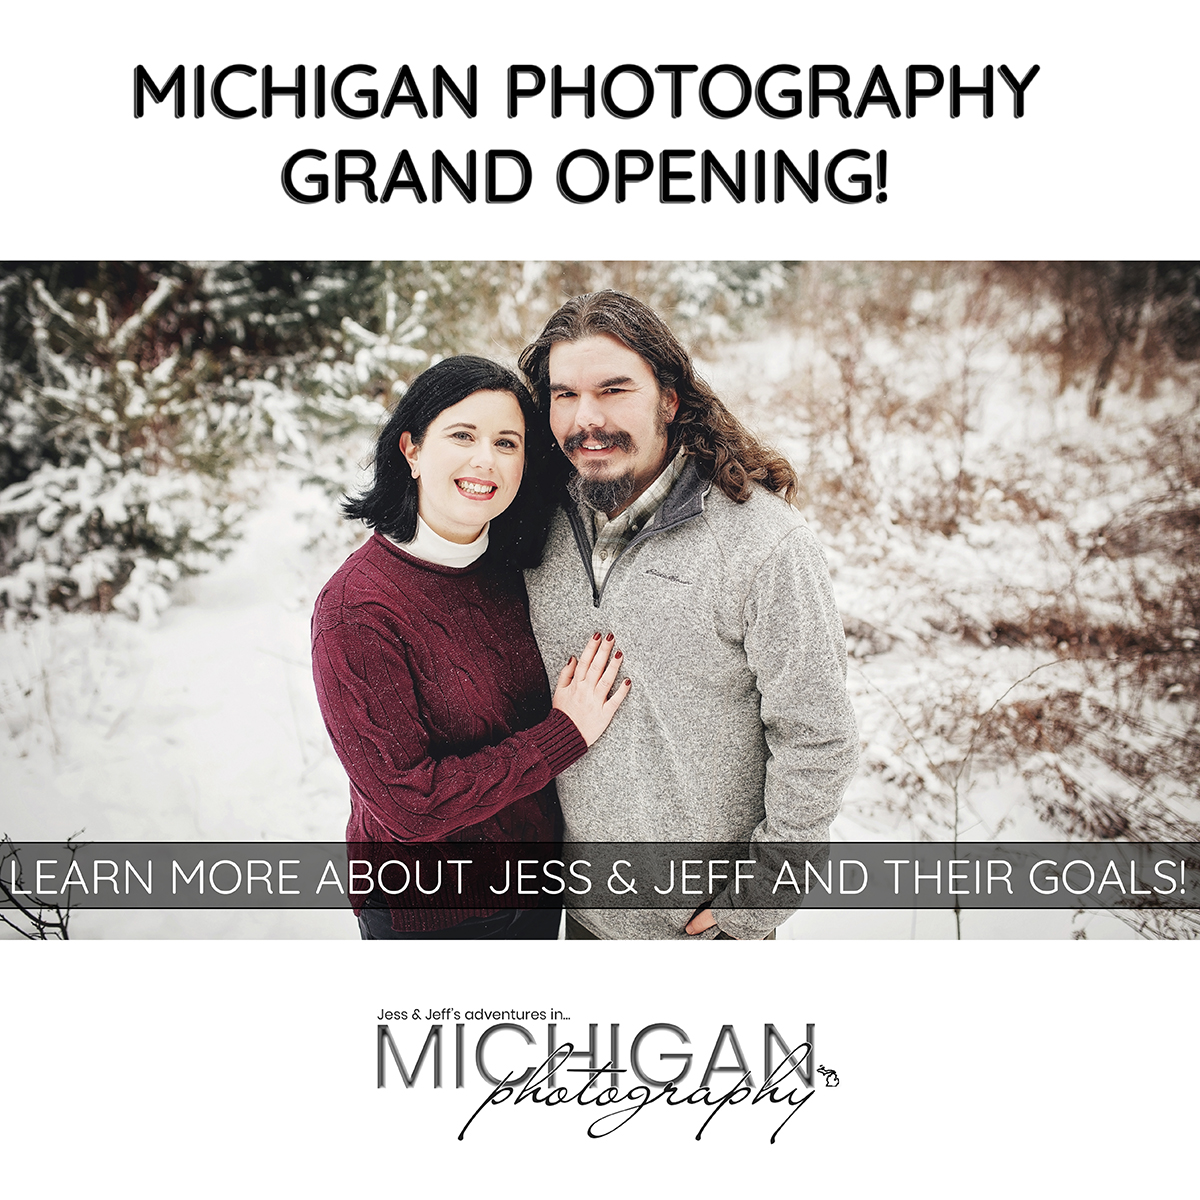 The Michigan Photography Store Grand Opening!